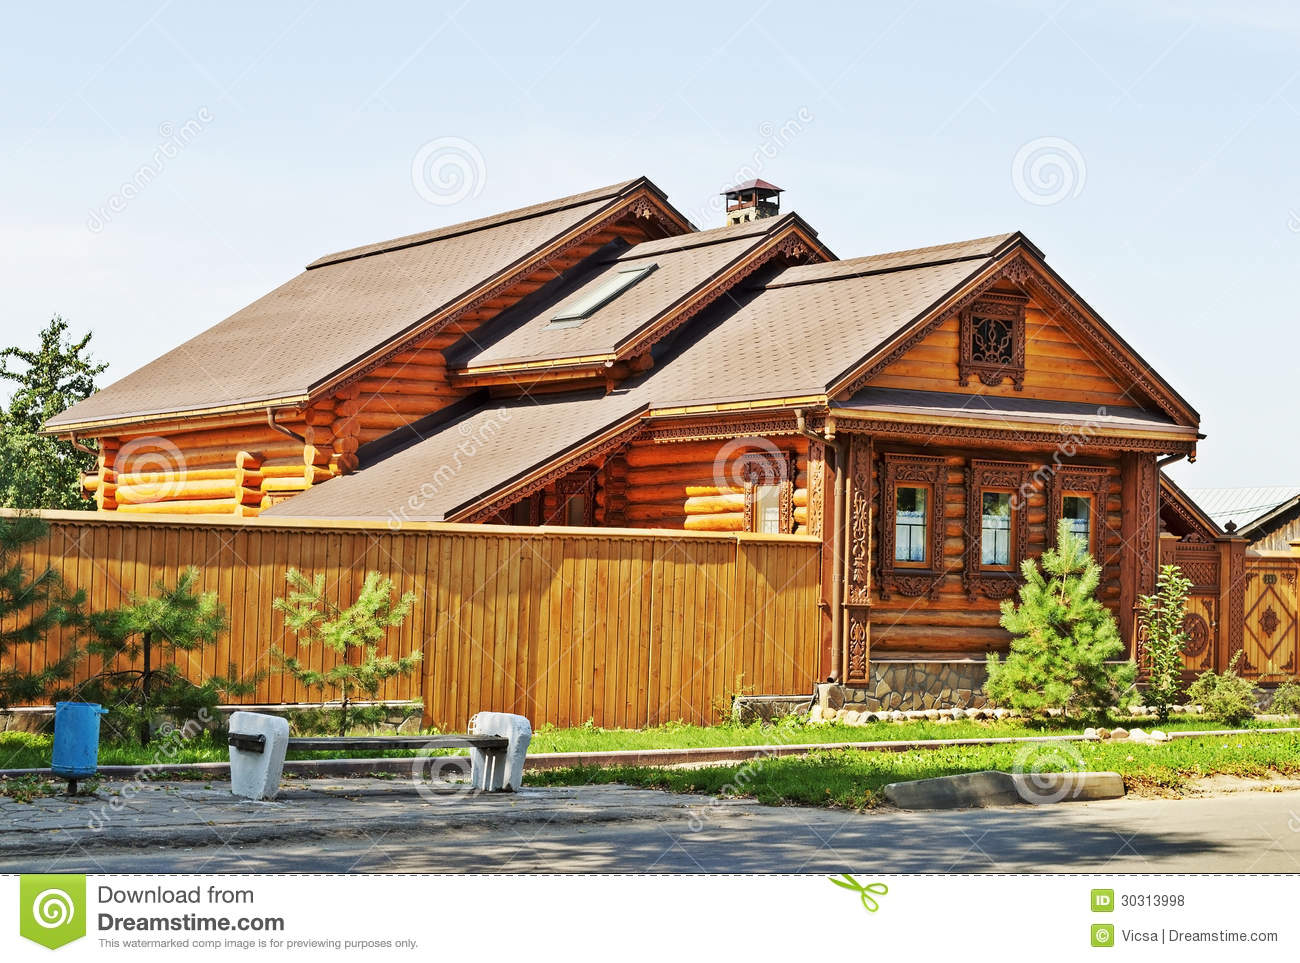 Beautiful wooden house royalty free stock photos image 30313998 Homes with lots of beautiful natural wood